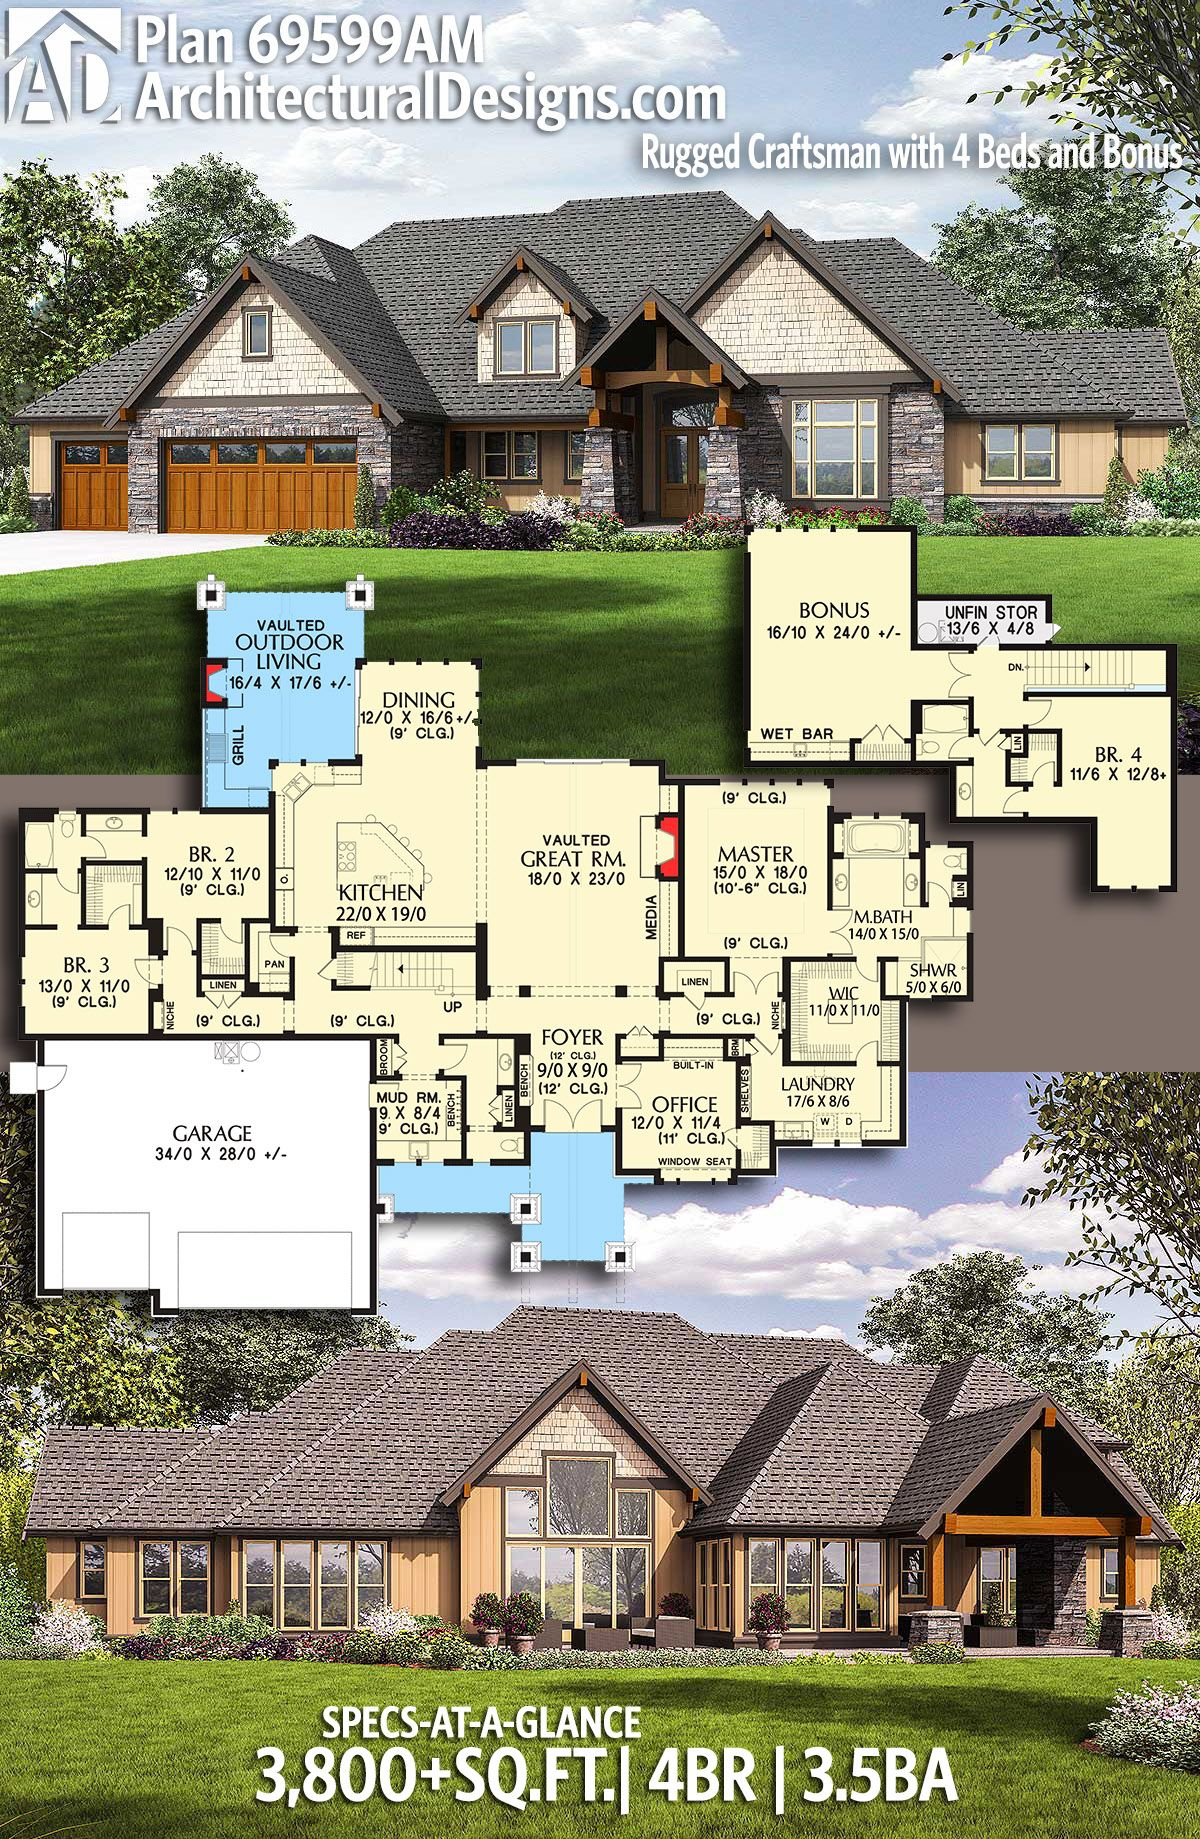 Plan AM Rugged Craftsman with Beds and Bonus in